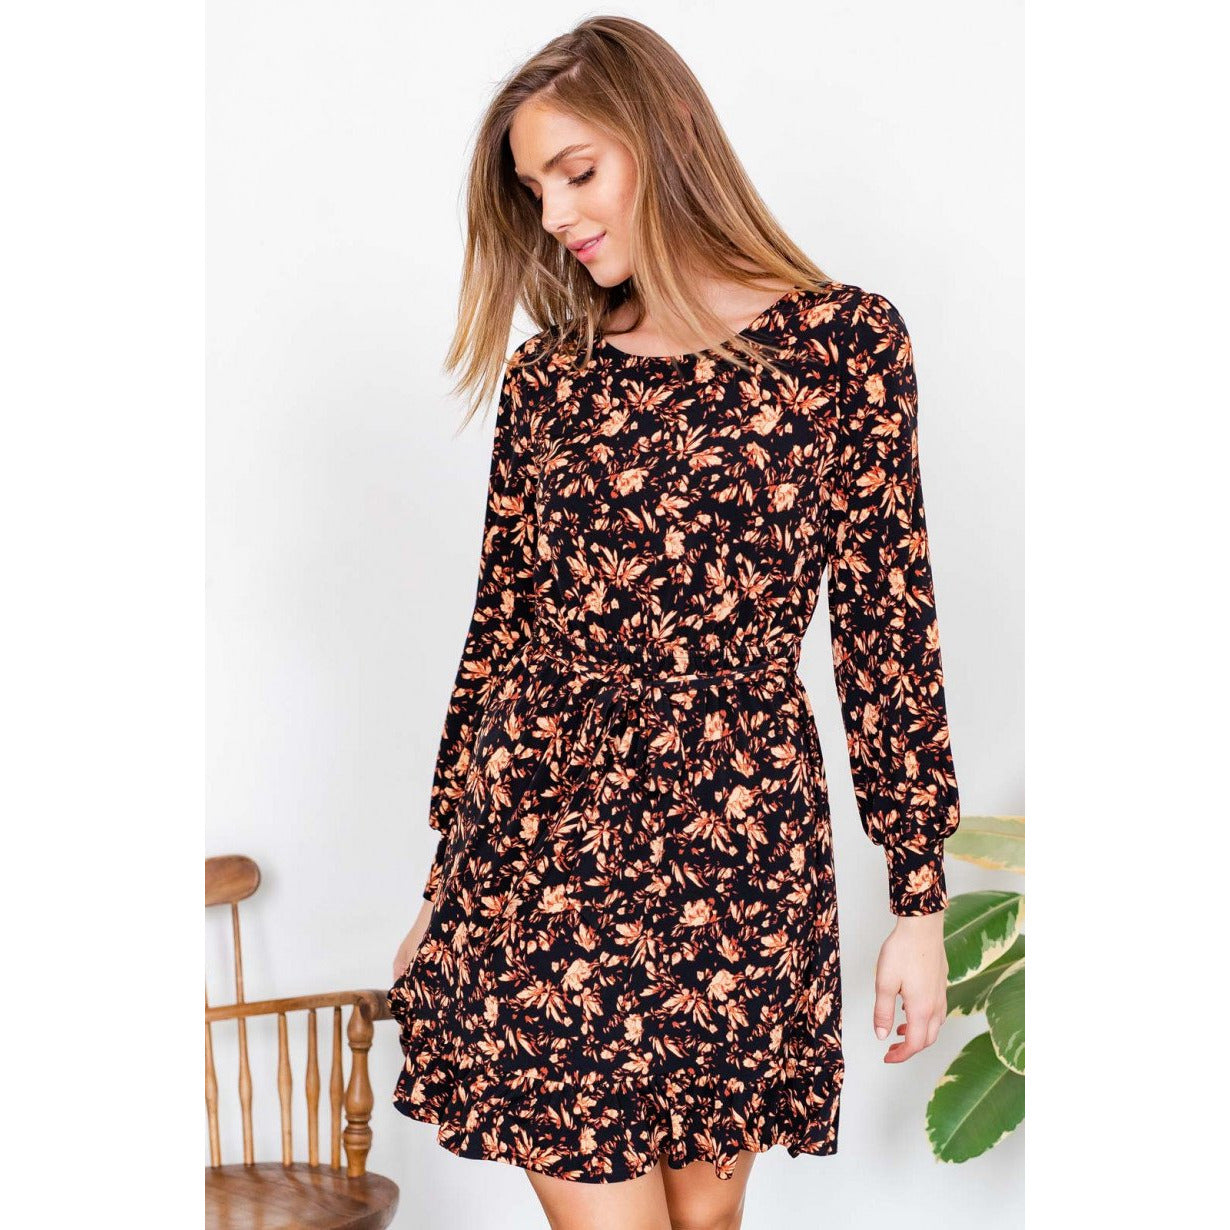 Long Sleeve Black Mini Dress with Peach Floral Print